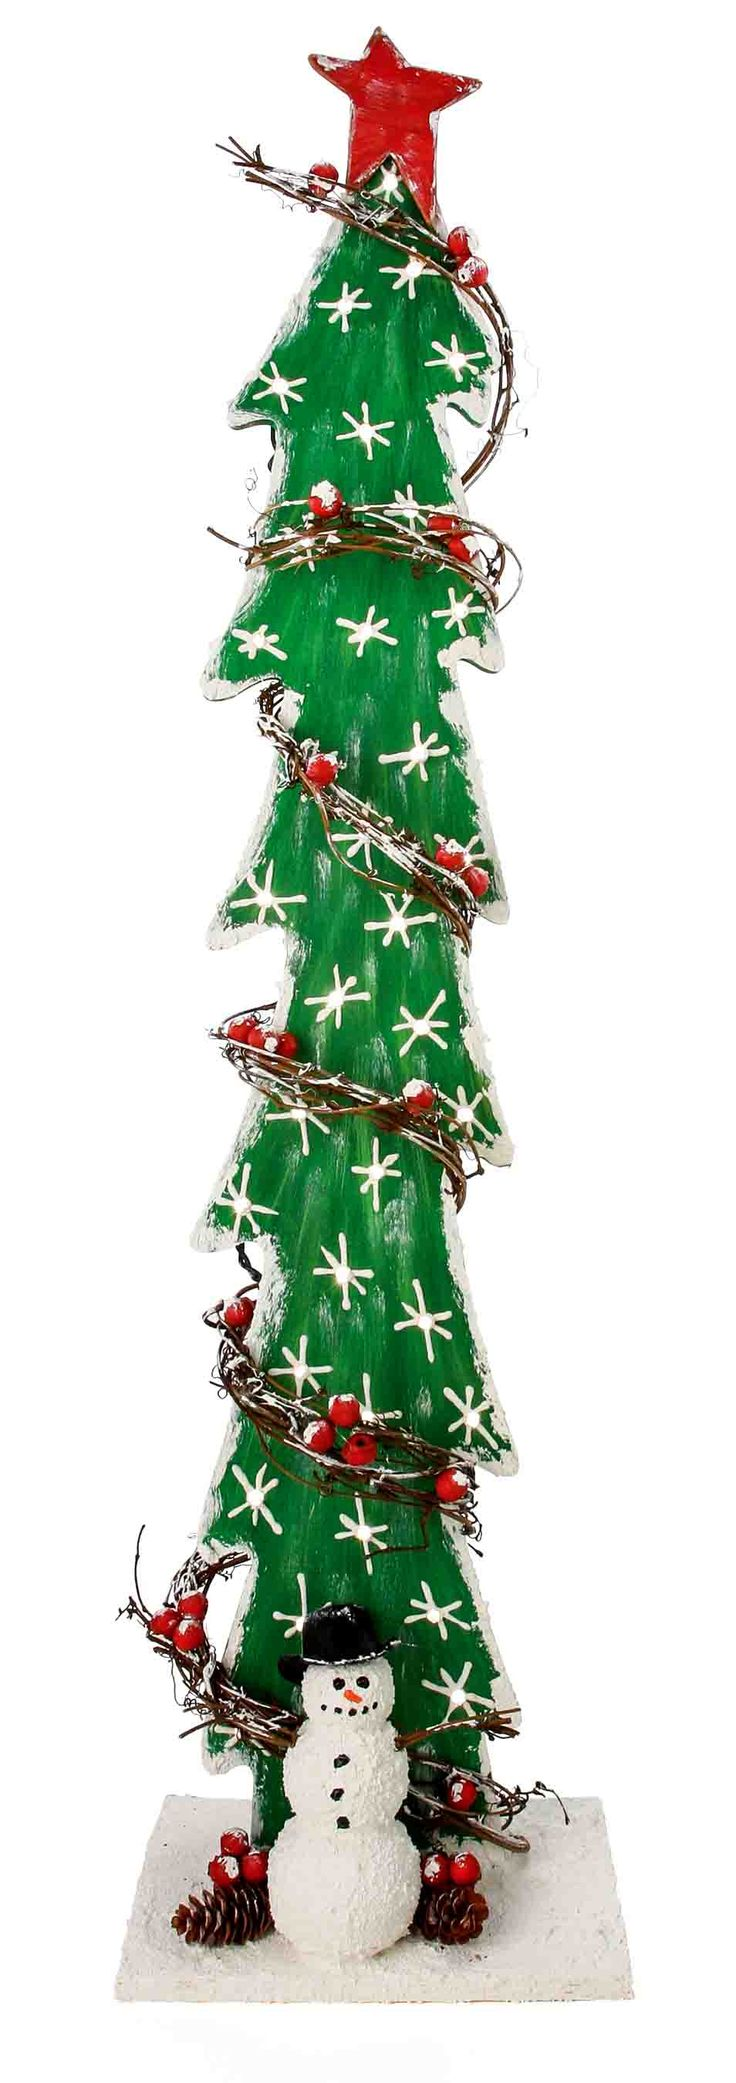 Nicole™ Crafts Lighted Tree With Twigs #christmas #craft